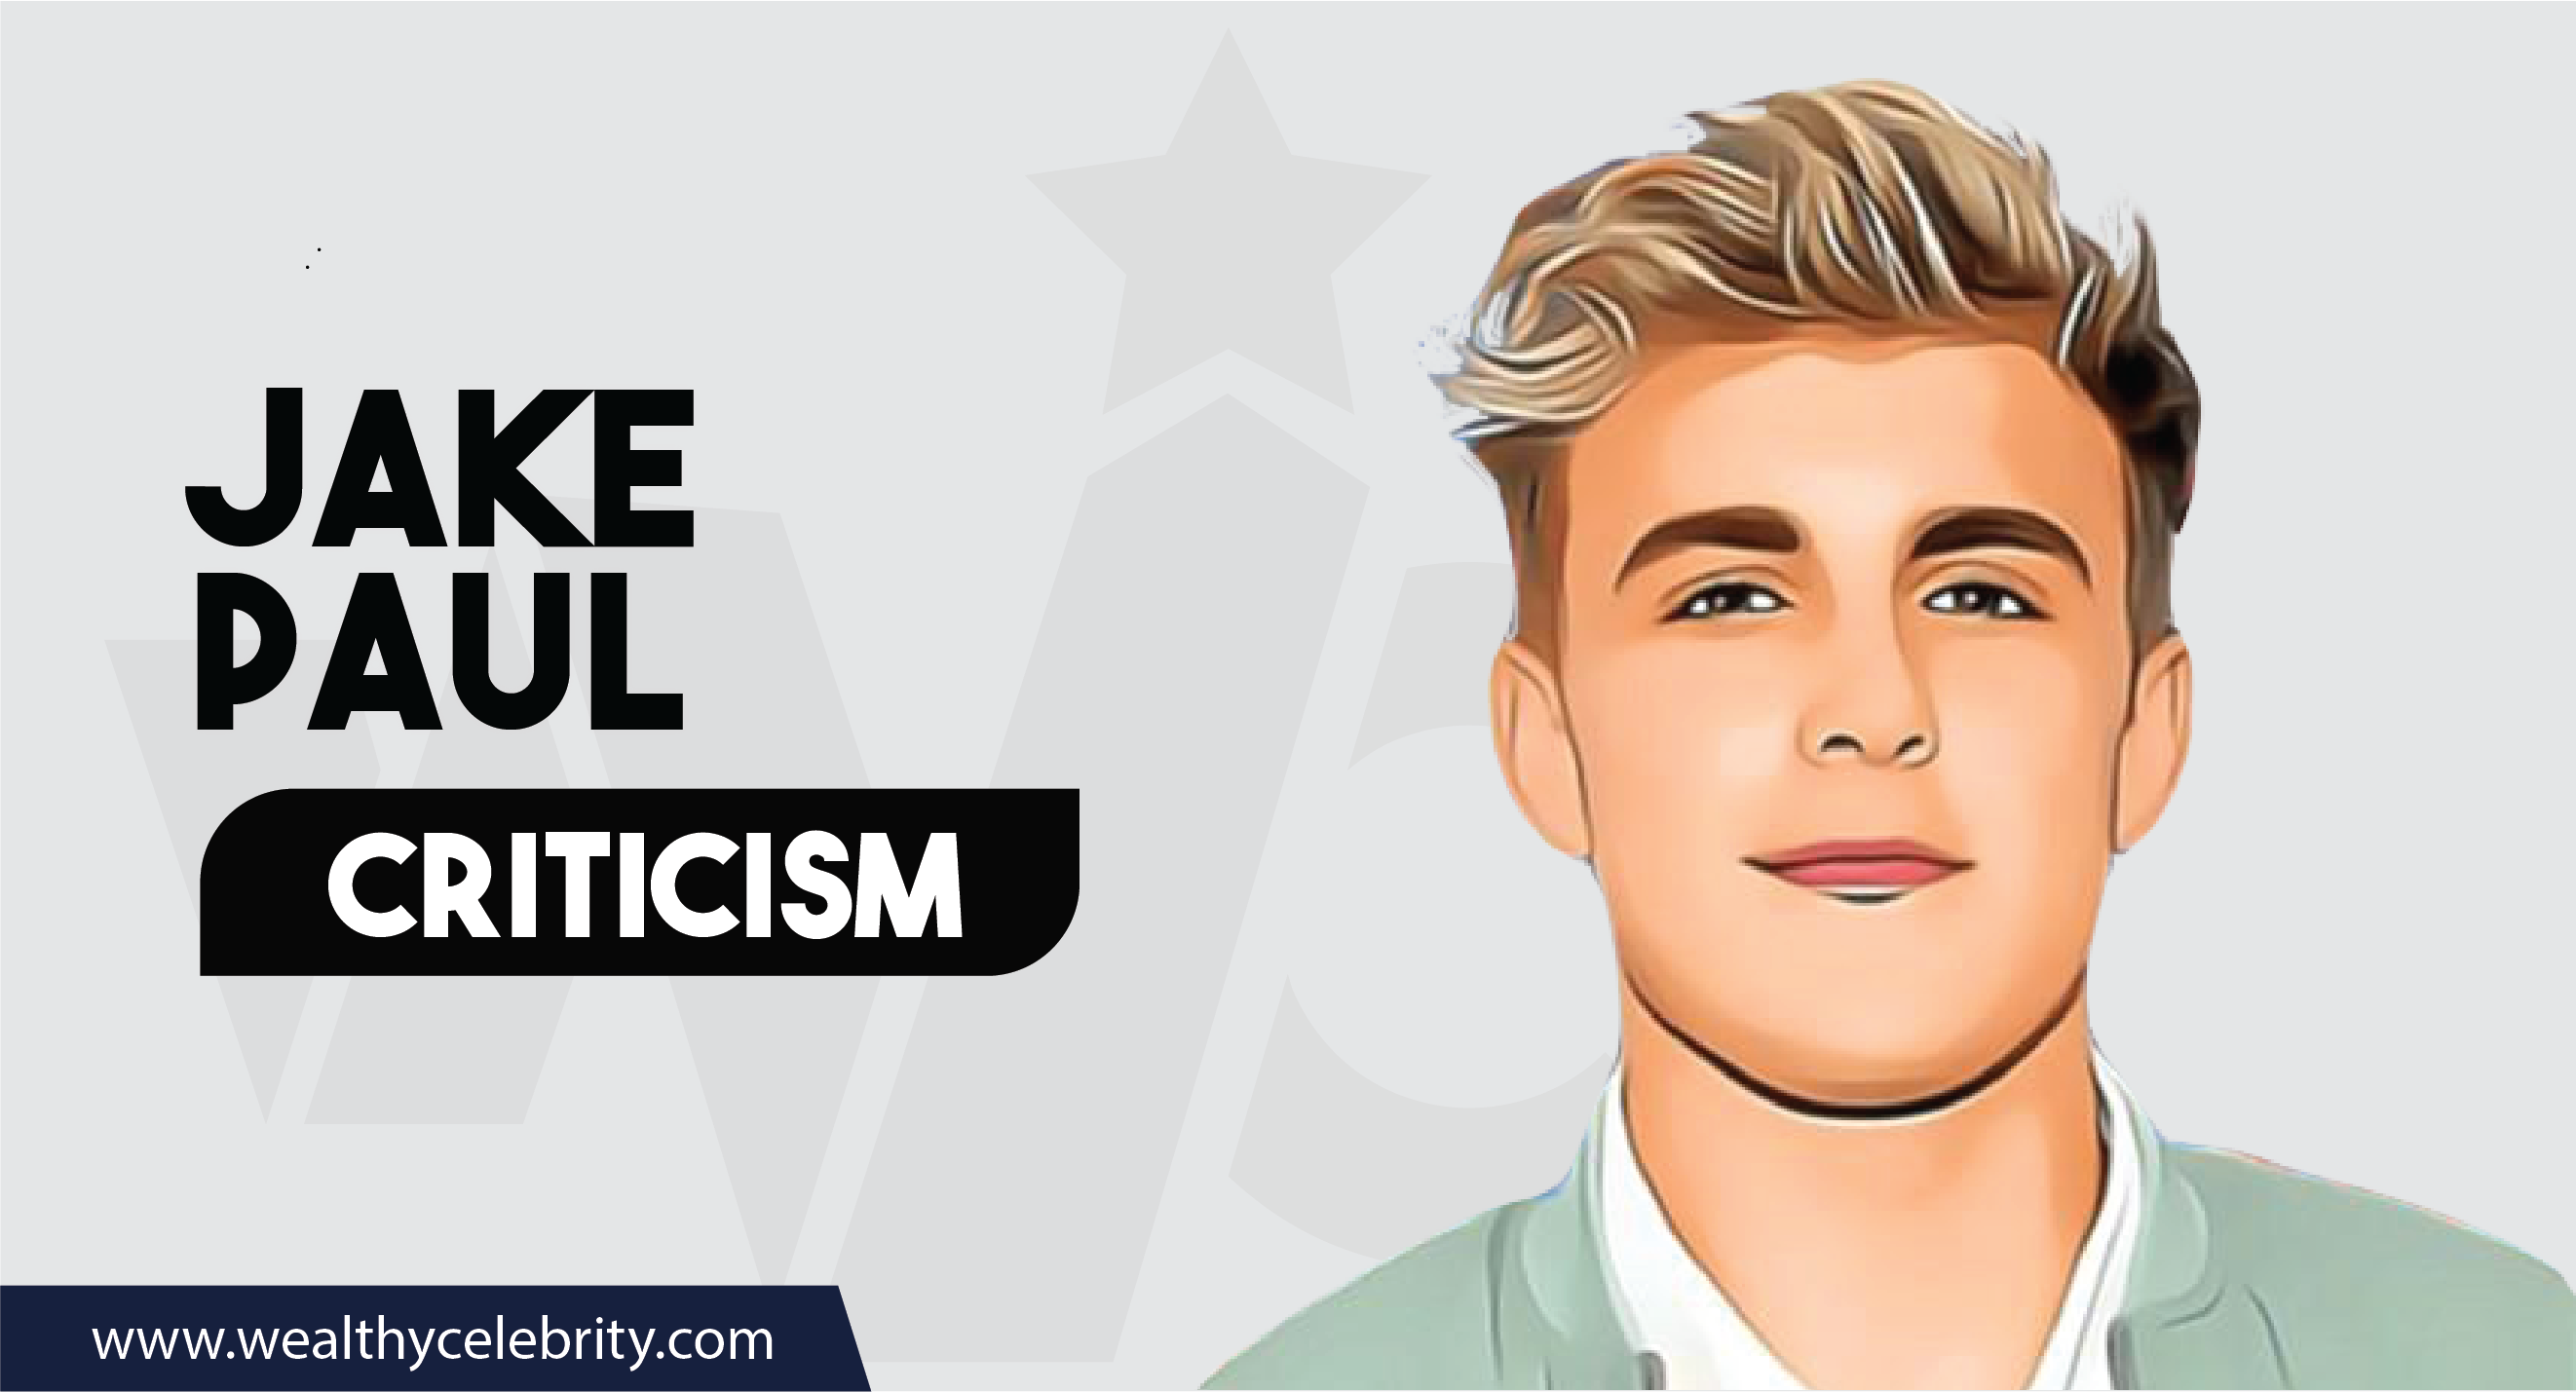 Jake Paul_Criticism